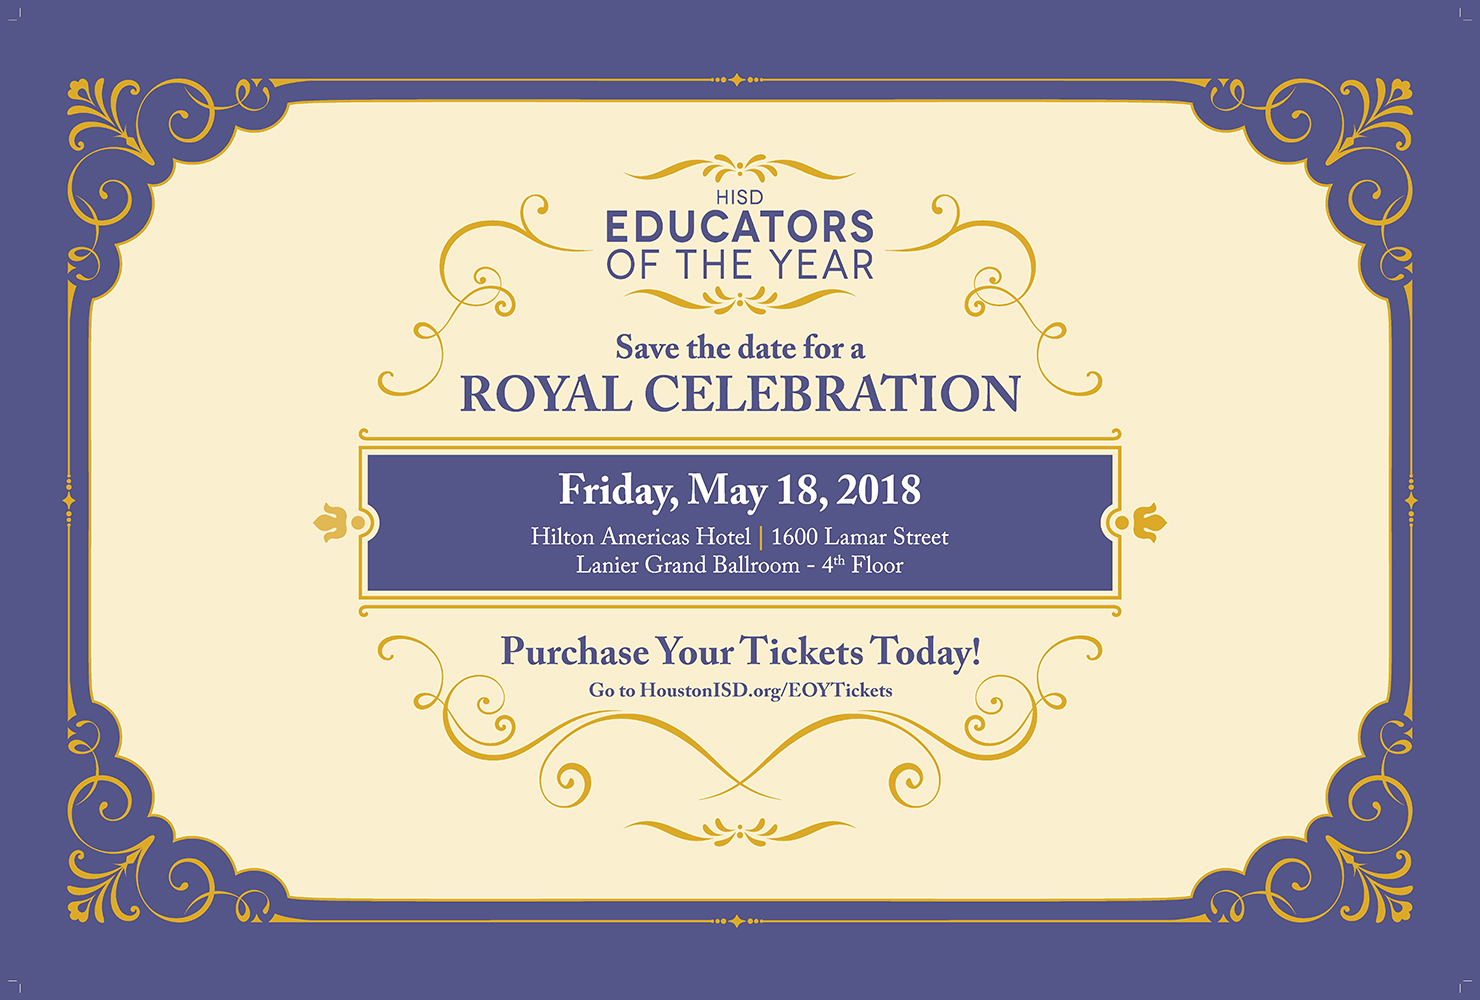 Tickets on sale now for educators of the year banquet hisd the years banquet is royal wedding themed and will recognize the districts campus toys beginning toys principals of the year and other special 1betcityfo Images